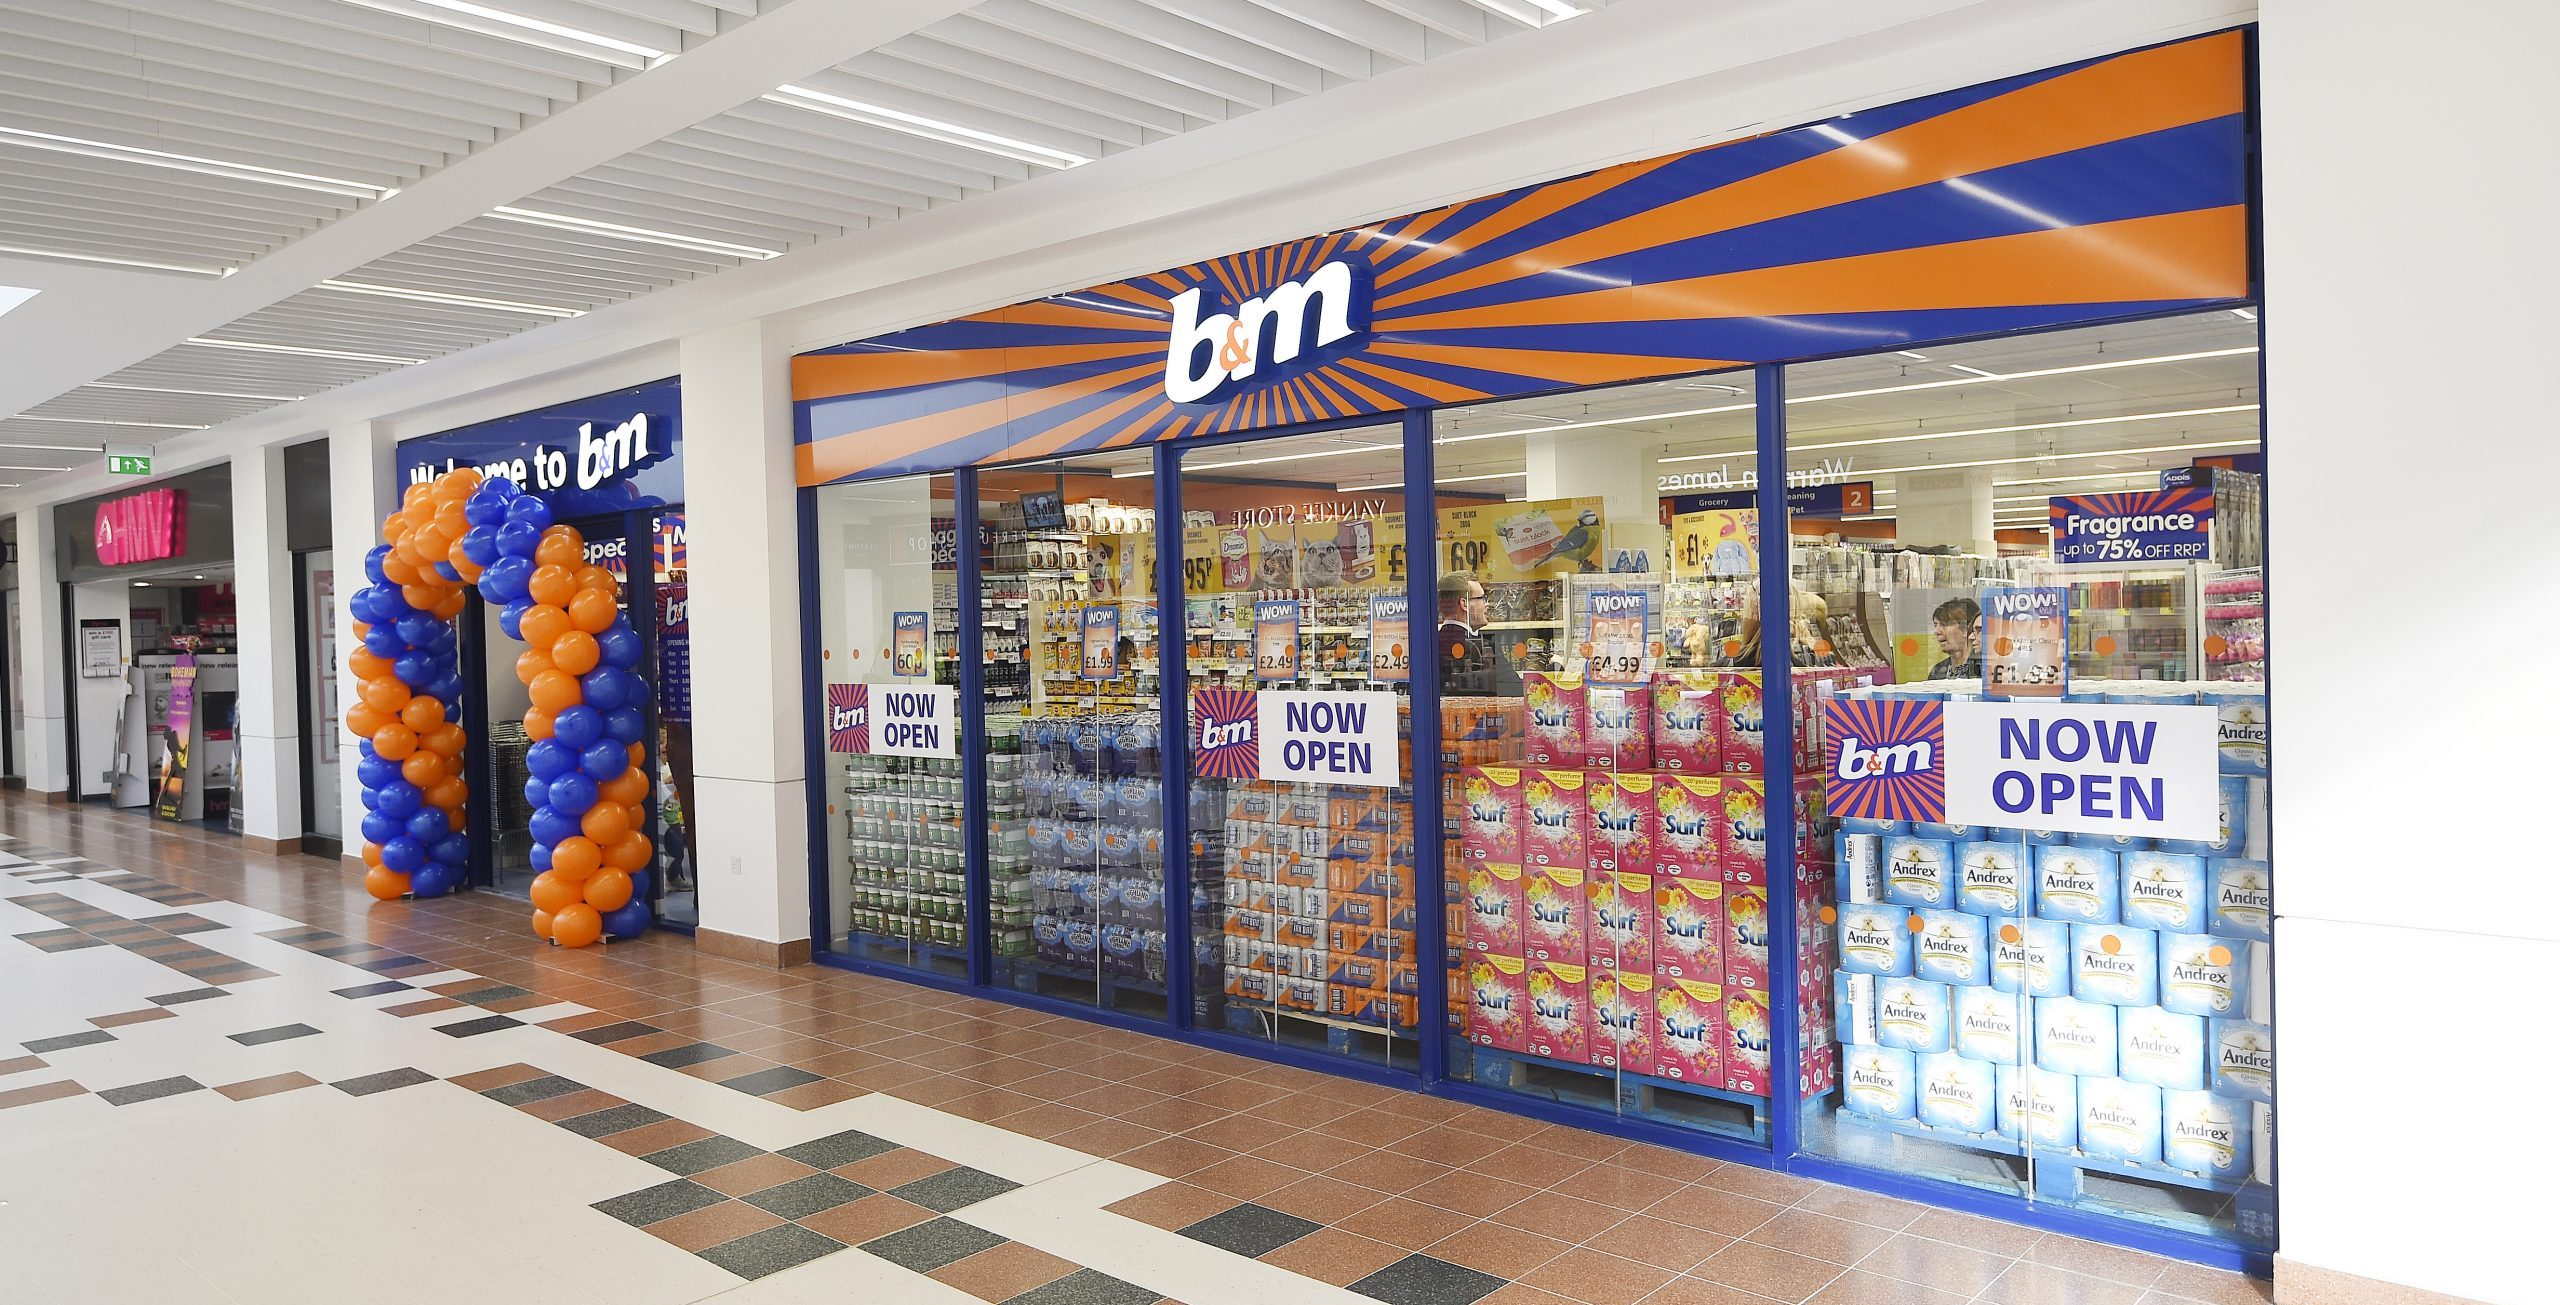 Coronavirus: B&M closing stores 'until further notice' due to drop in profits